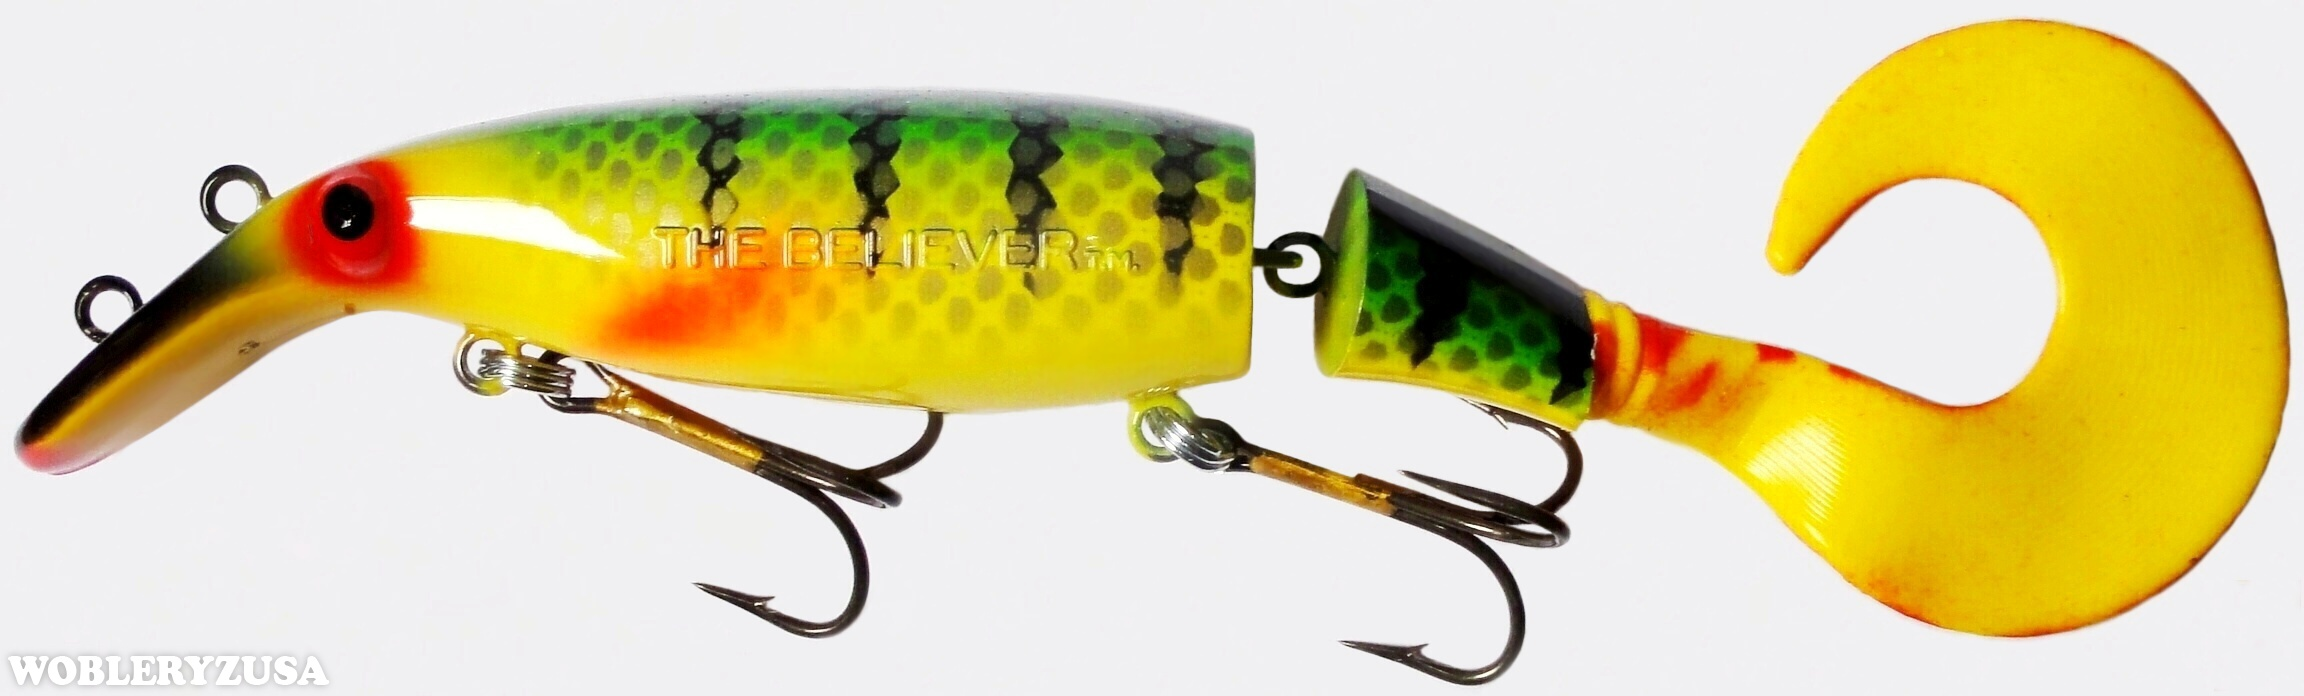 Wobler Super BELIEVER 20 (23) cm - Perch YB